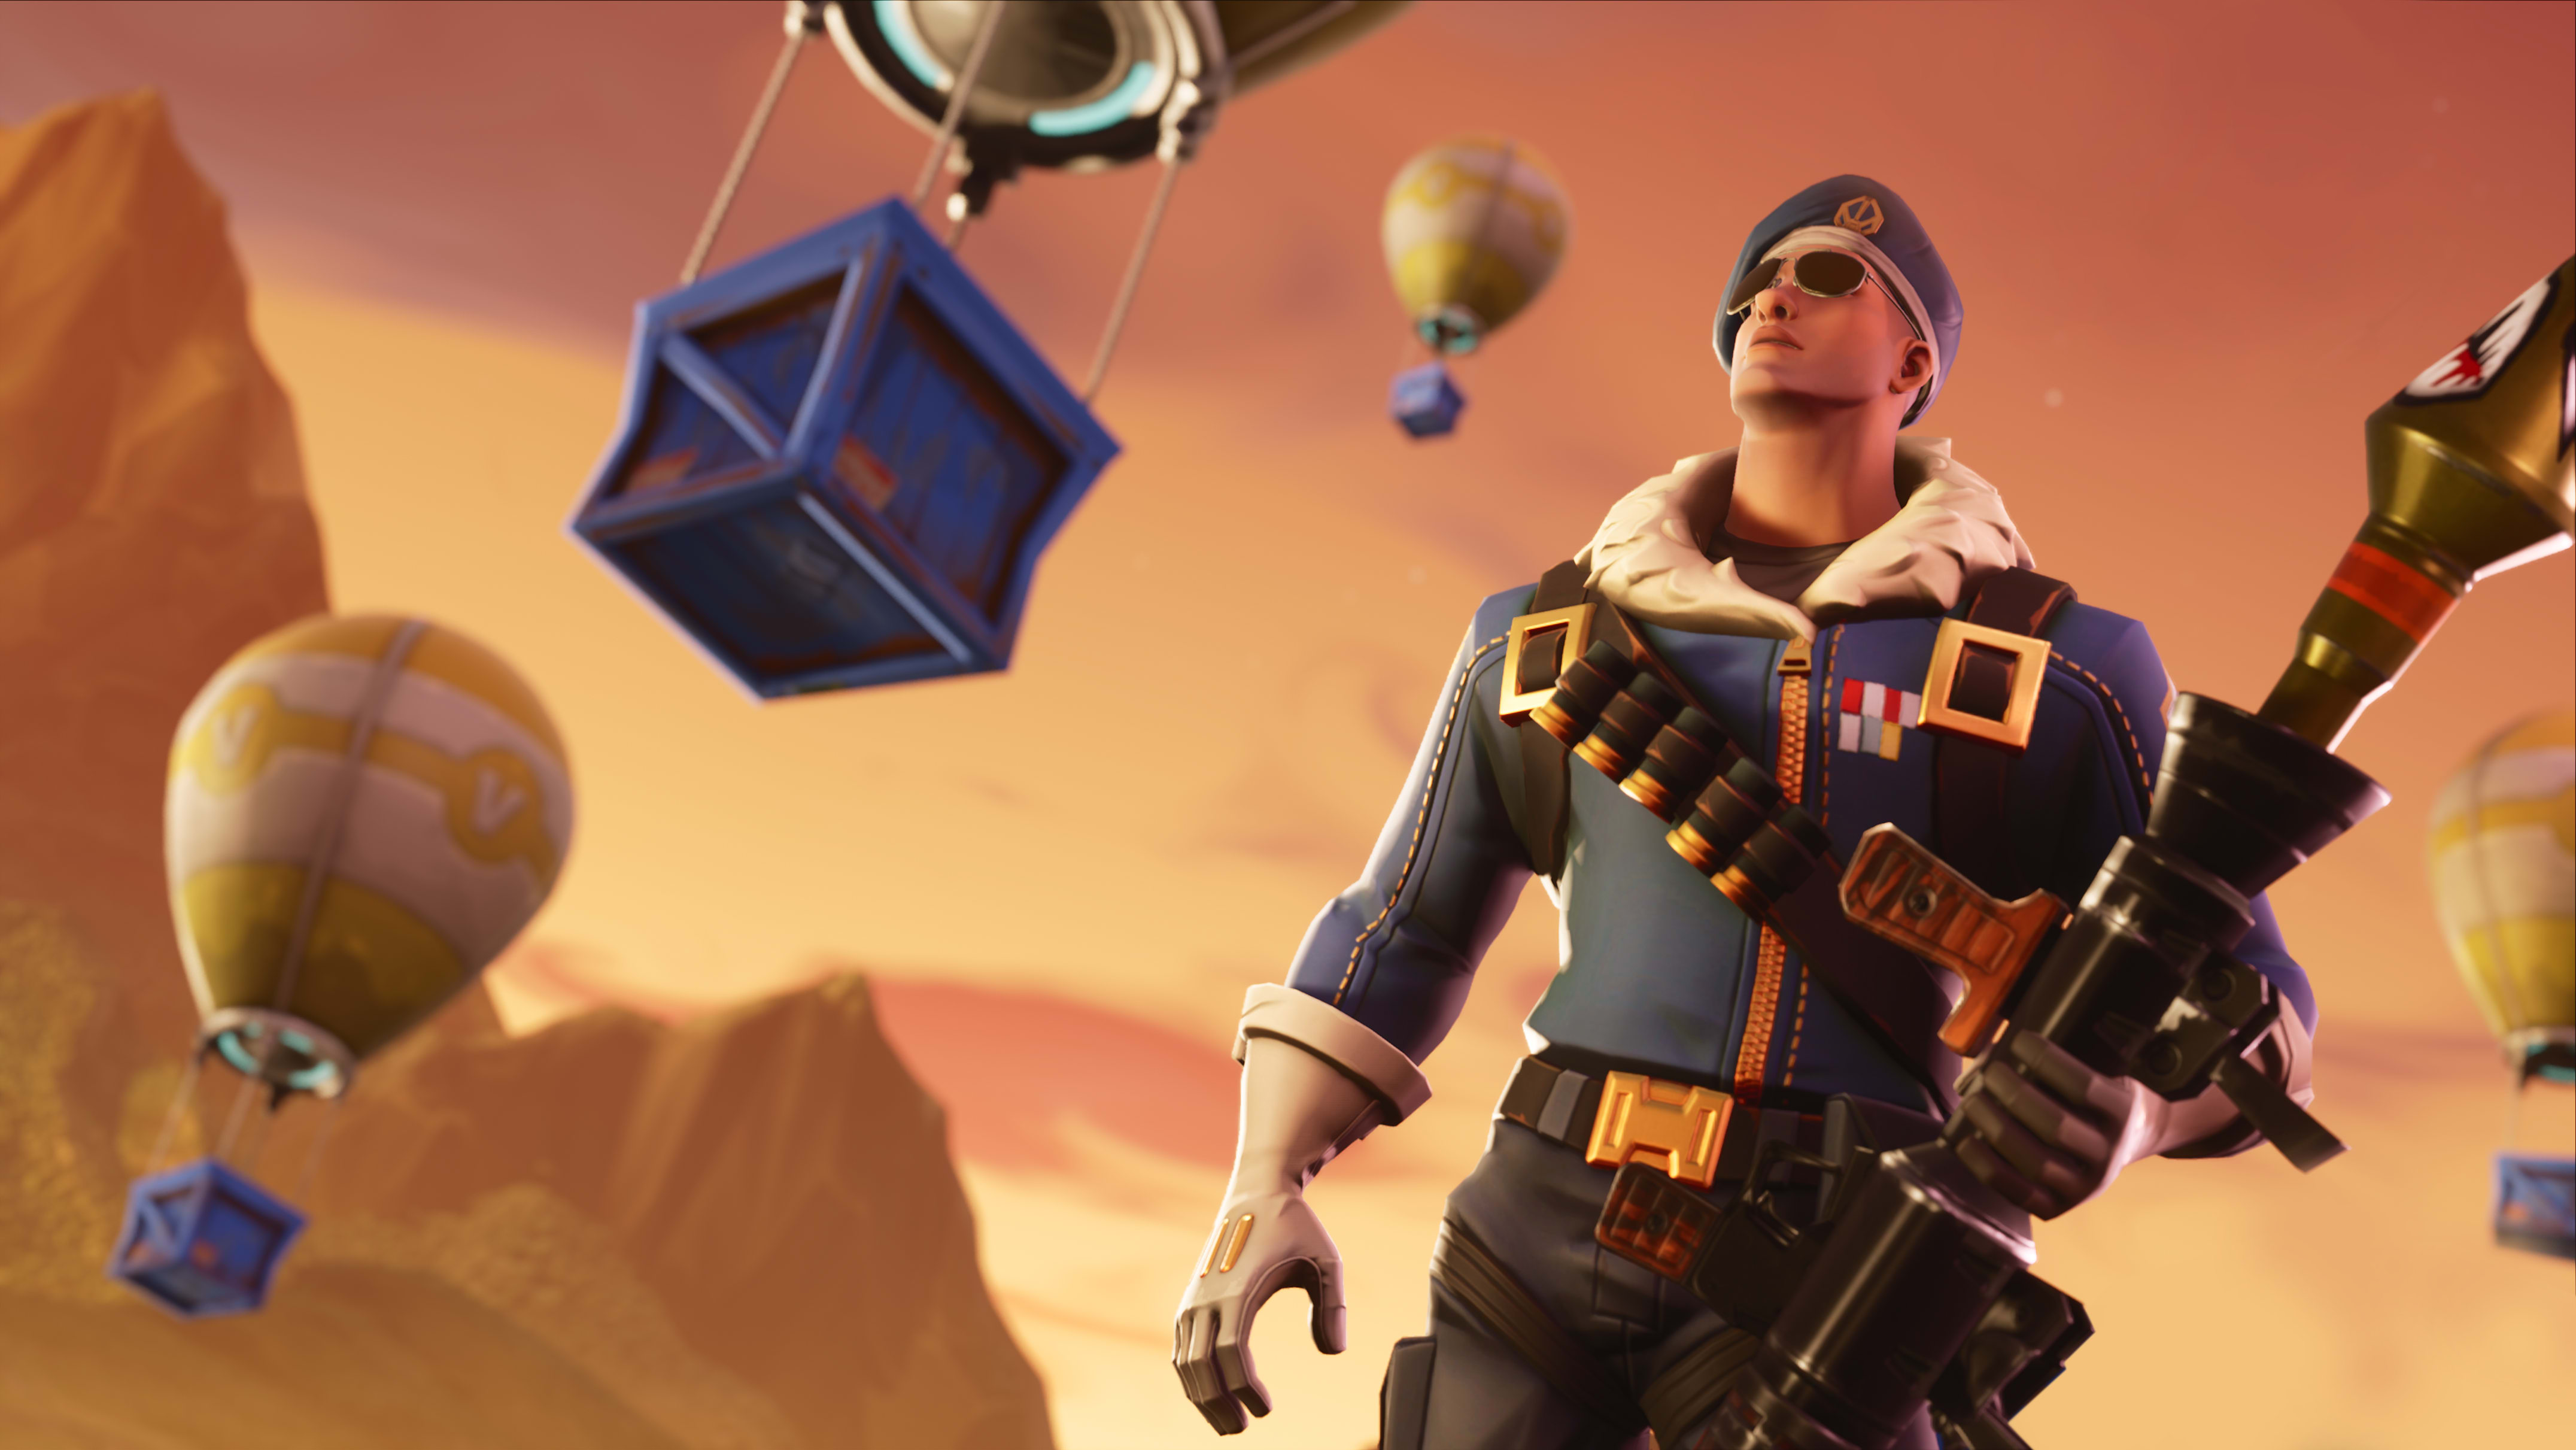 Buy Ps4 Pro 1tb With Fortnite Royale Bomber Outfit 500 V Bucks